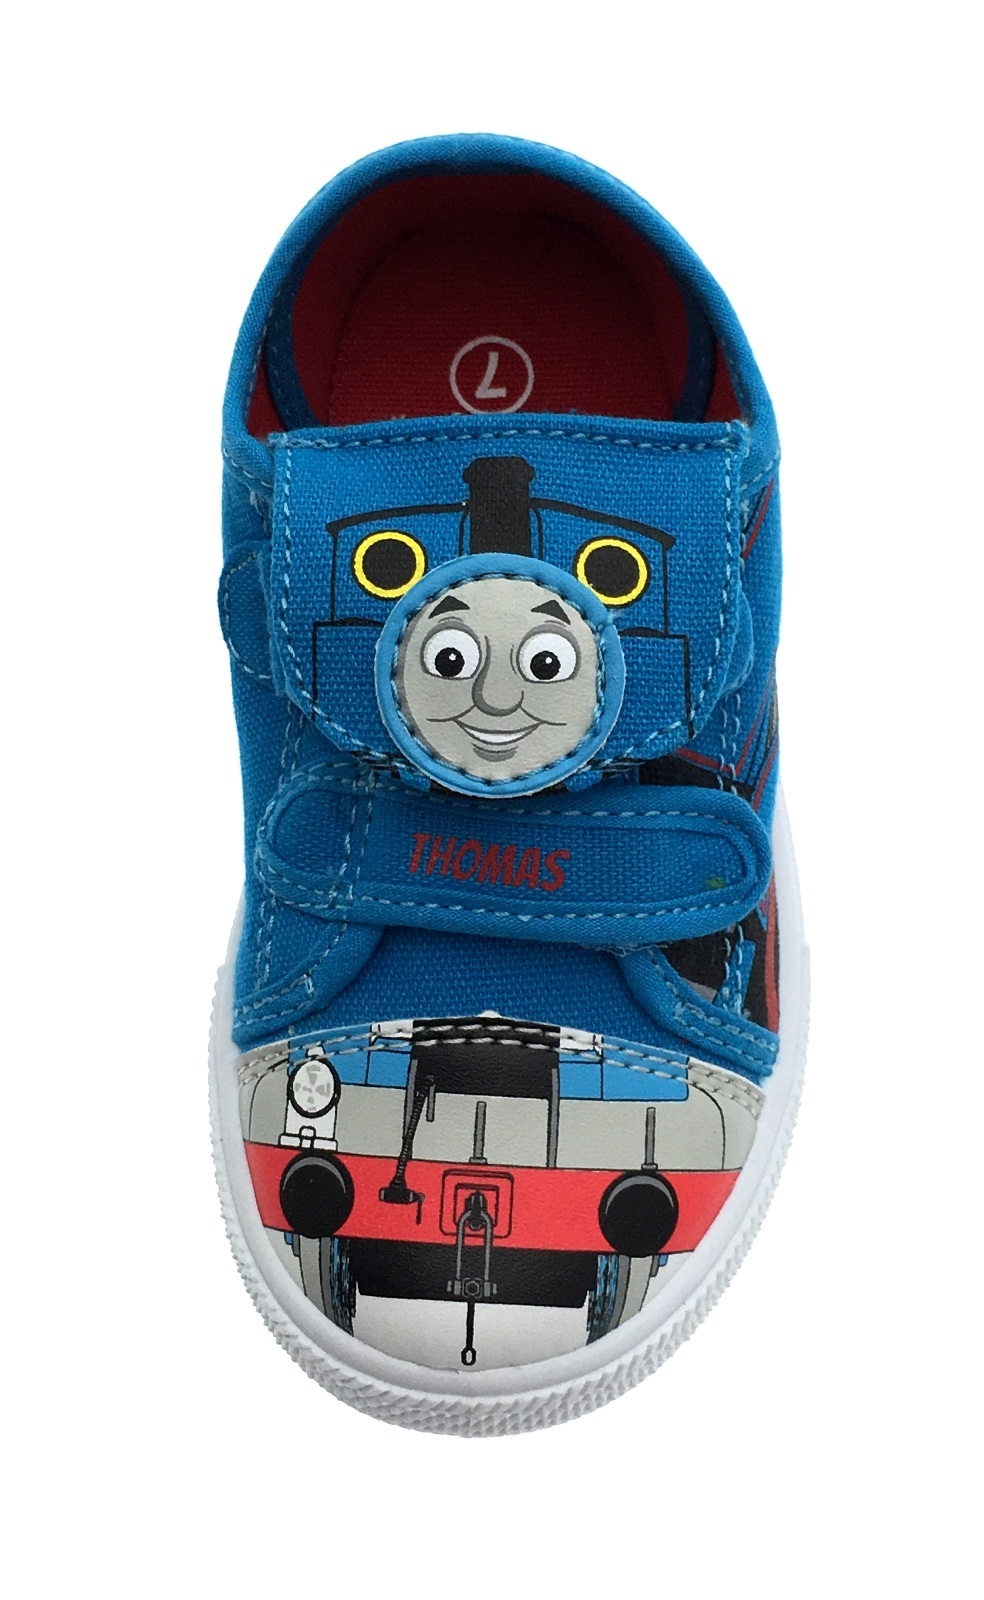 Boys Thomas The Tank Engine Flat Canvas Shoes Adjustable Straps Kids Size